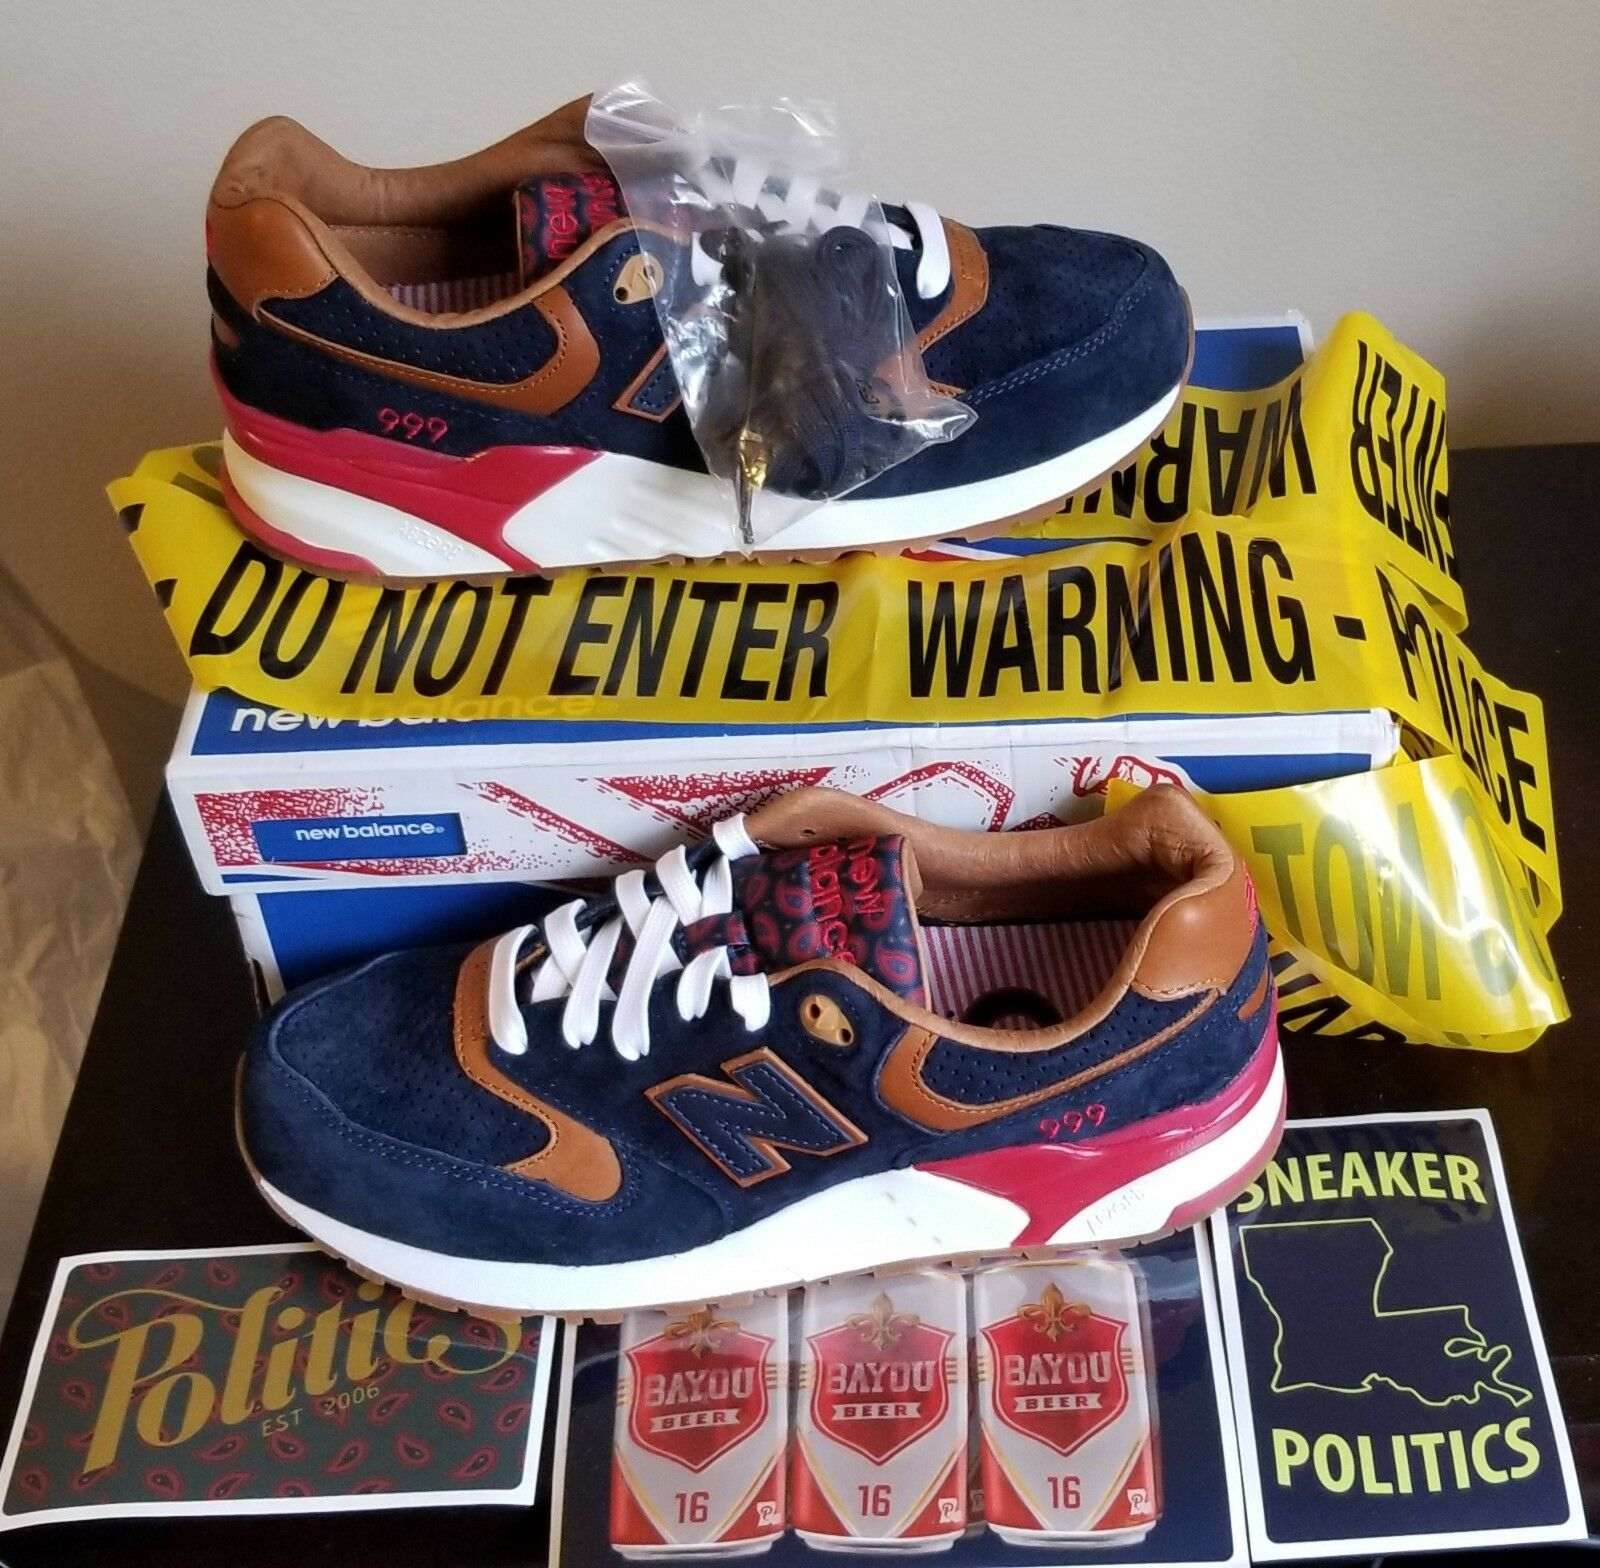 NEW AUTHENTIC NEW BALANCE x SNEAKER US POLITICS ML999SP 'CASE 999' US SNEAKER 8 2251e1